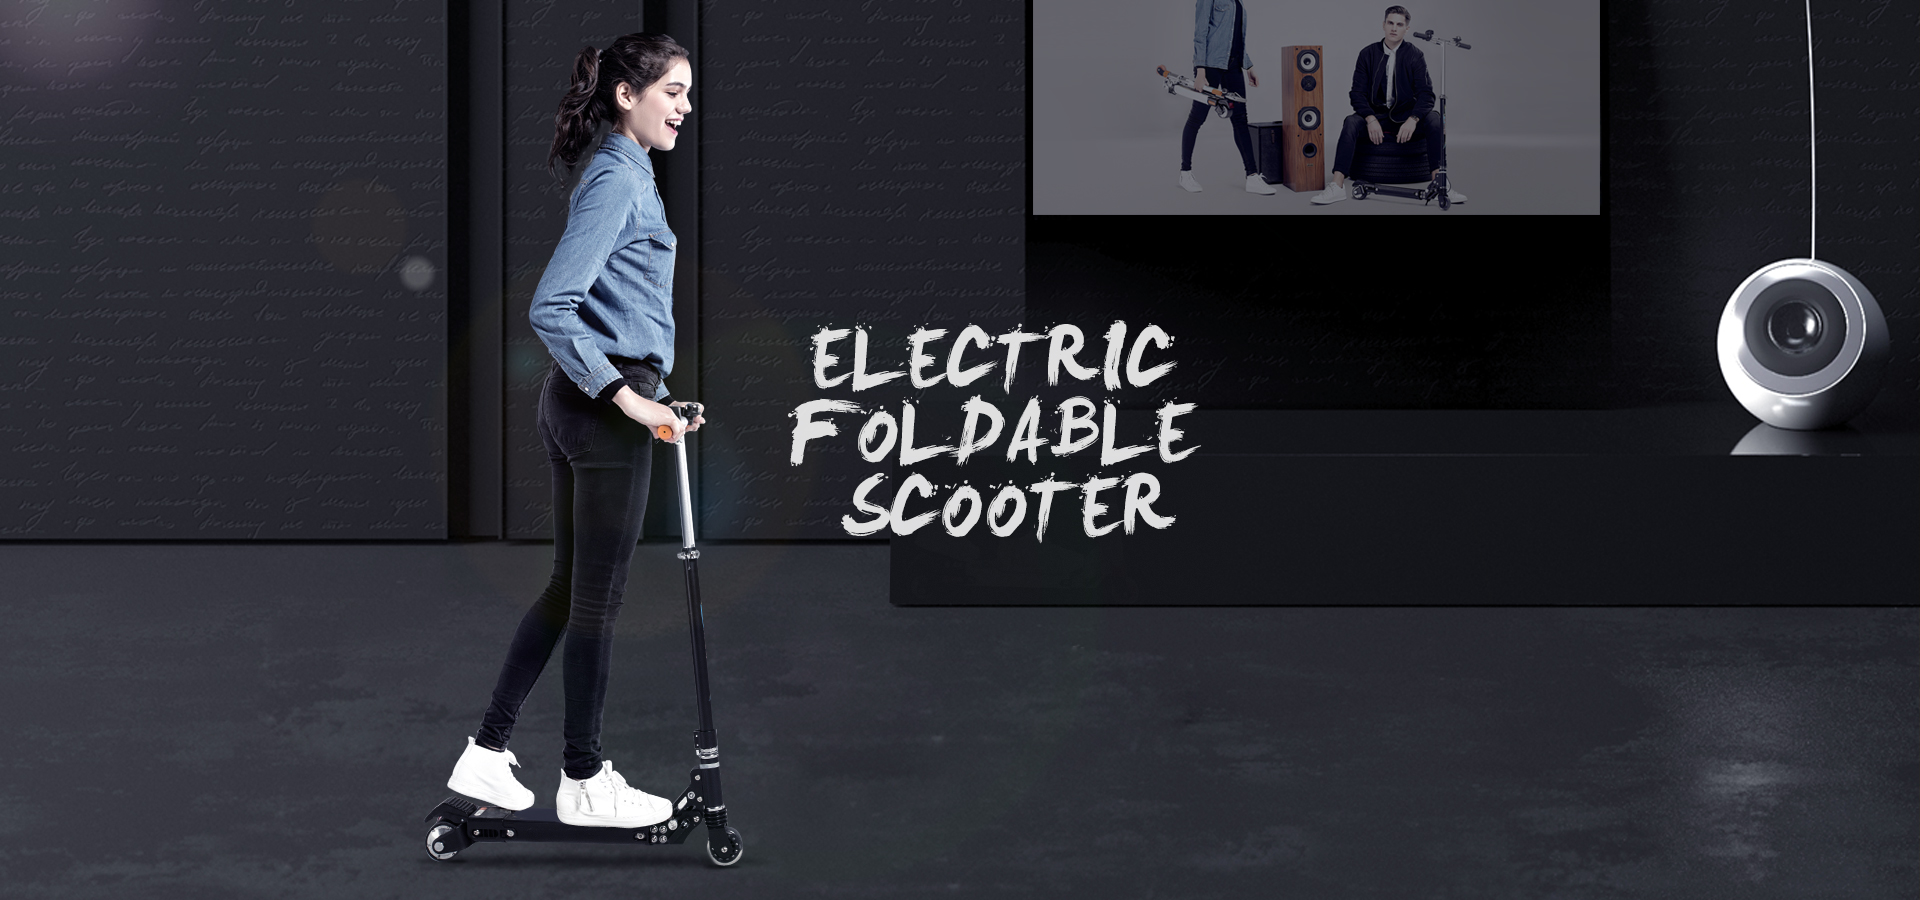 Airwheel Z8 mini lightweight electric scooter